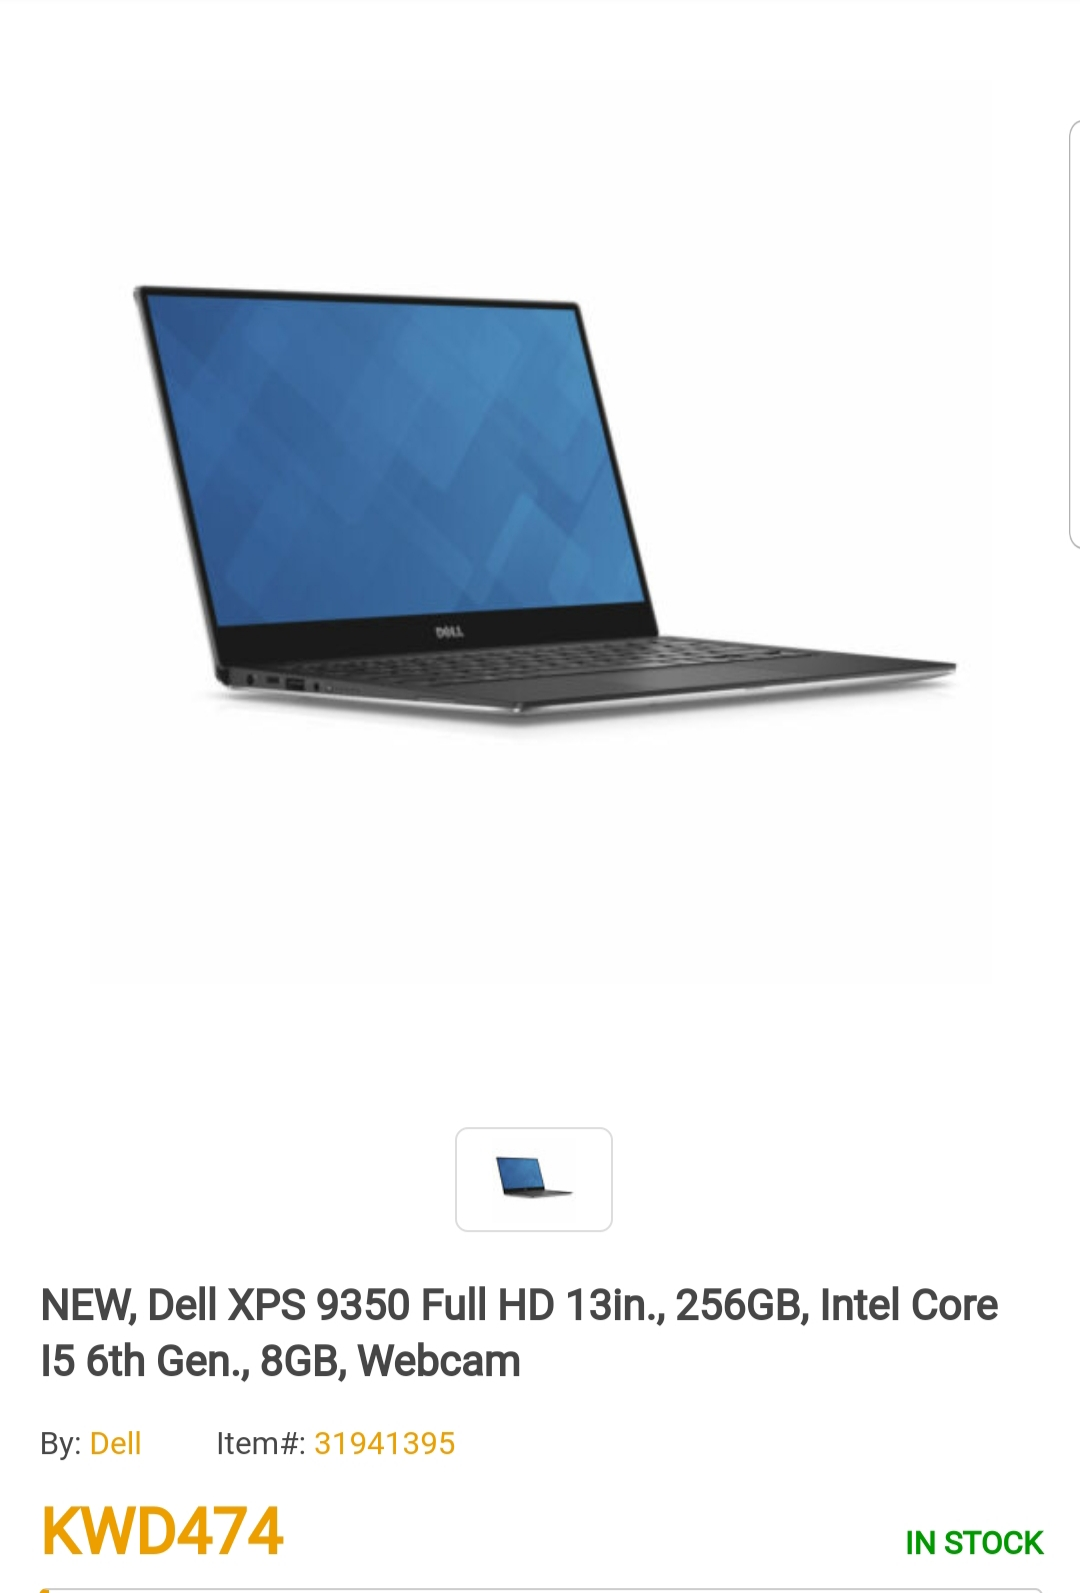 Touchscreen Dell XPS 9350 Full HD 13in., 256GB, Intel Core I5., 8GB,